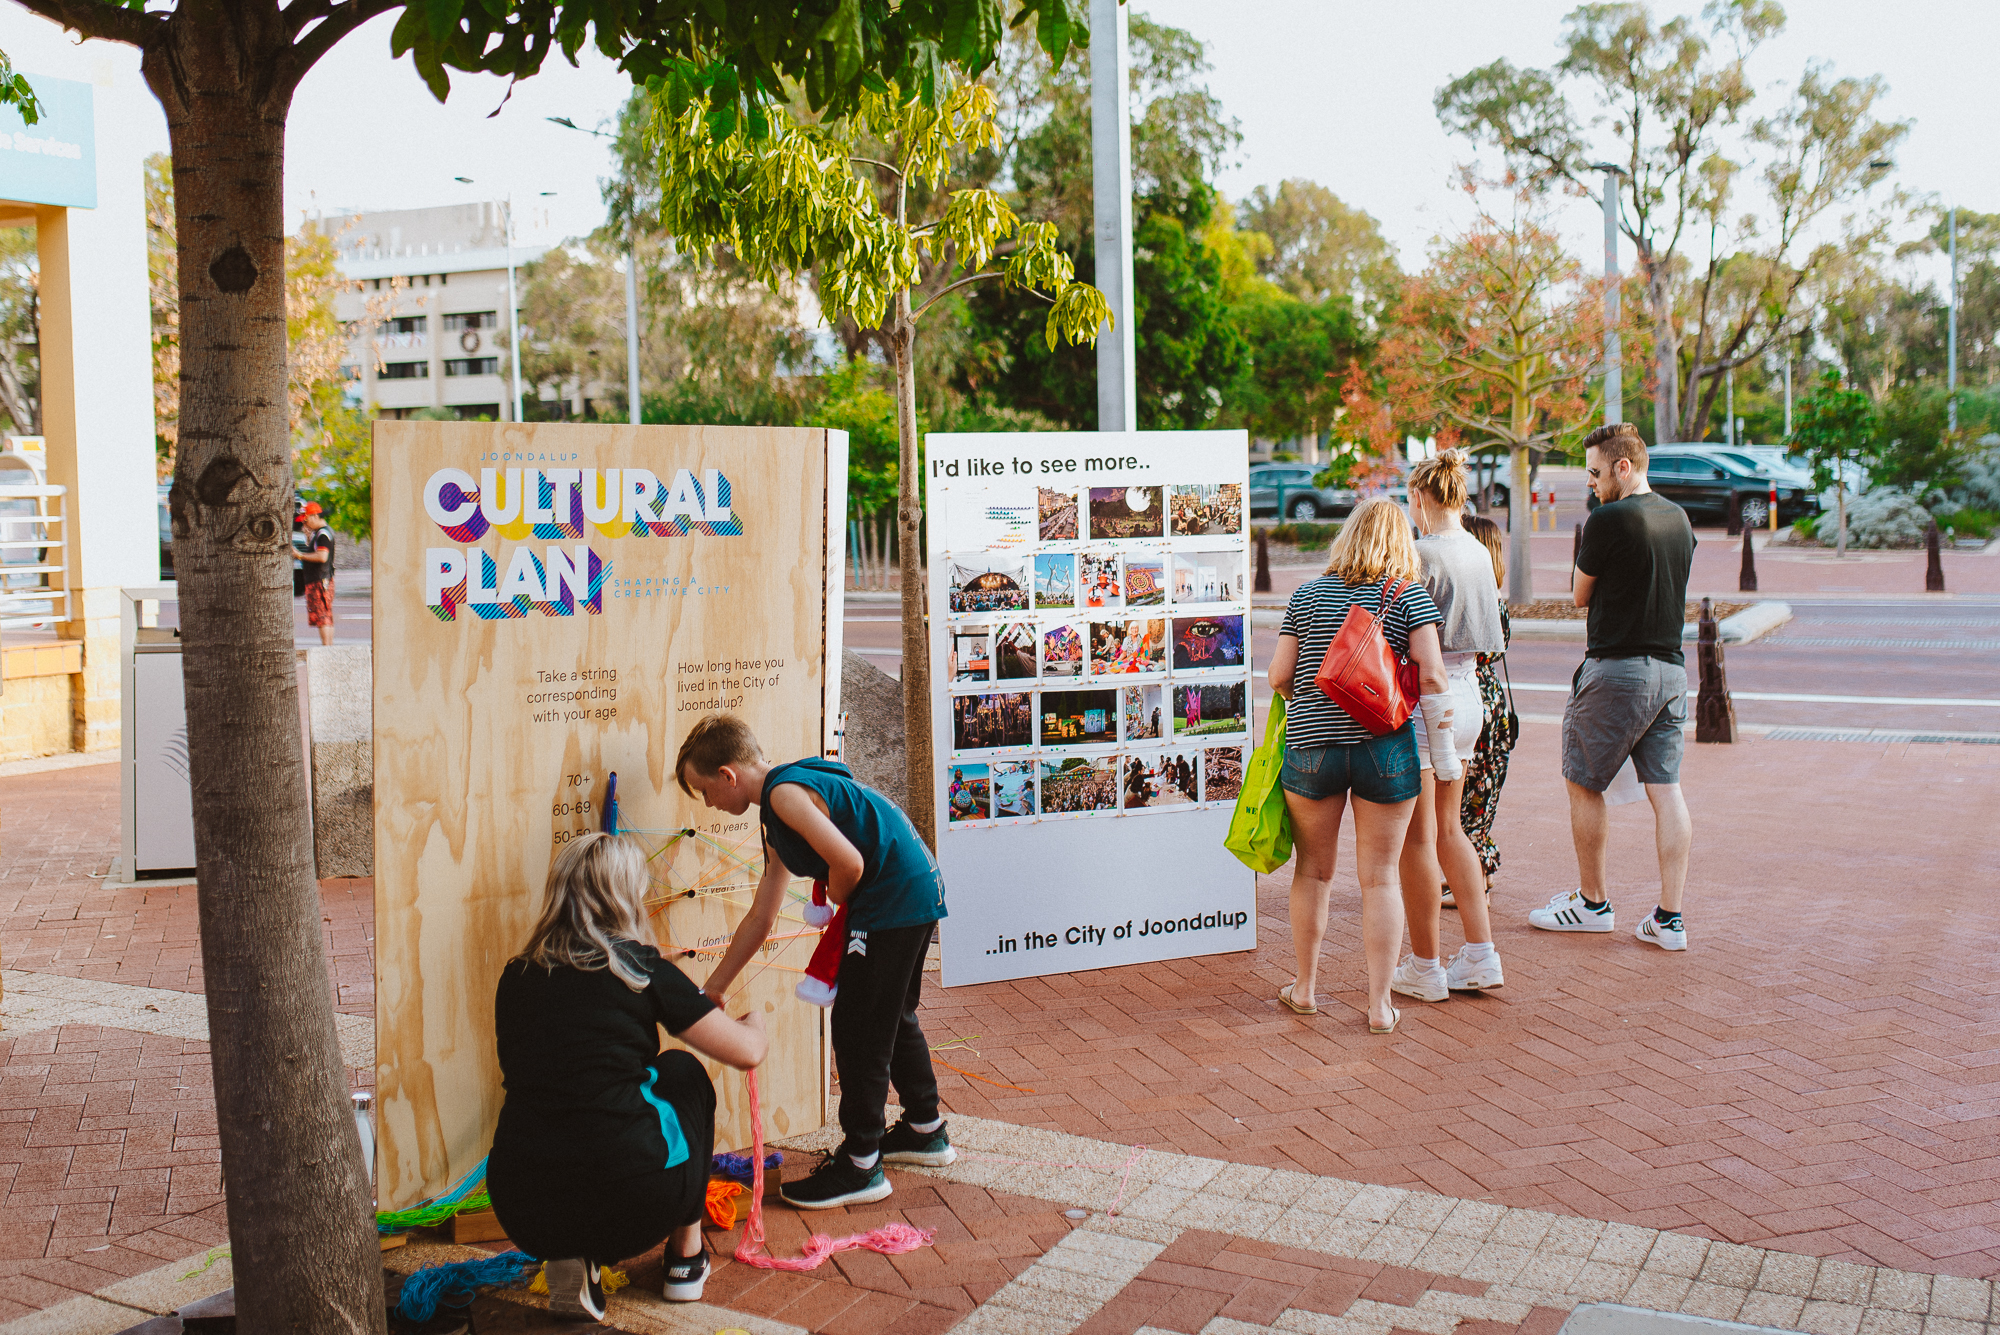 Community survey interactive activity at Joondalup